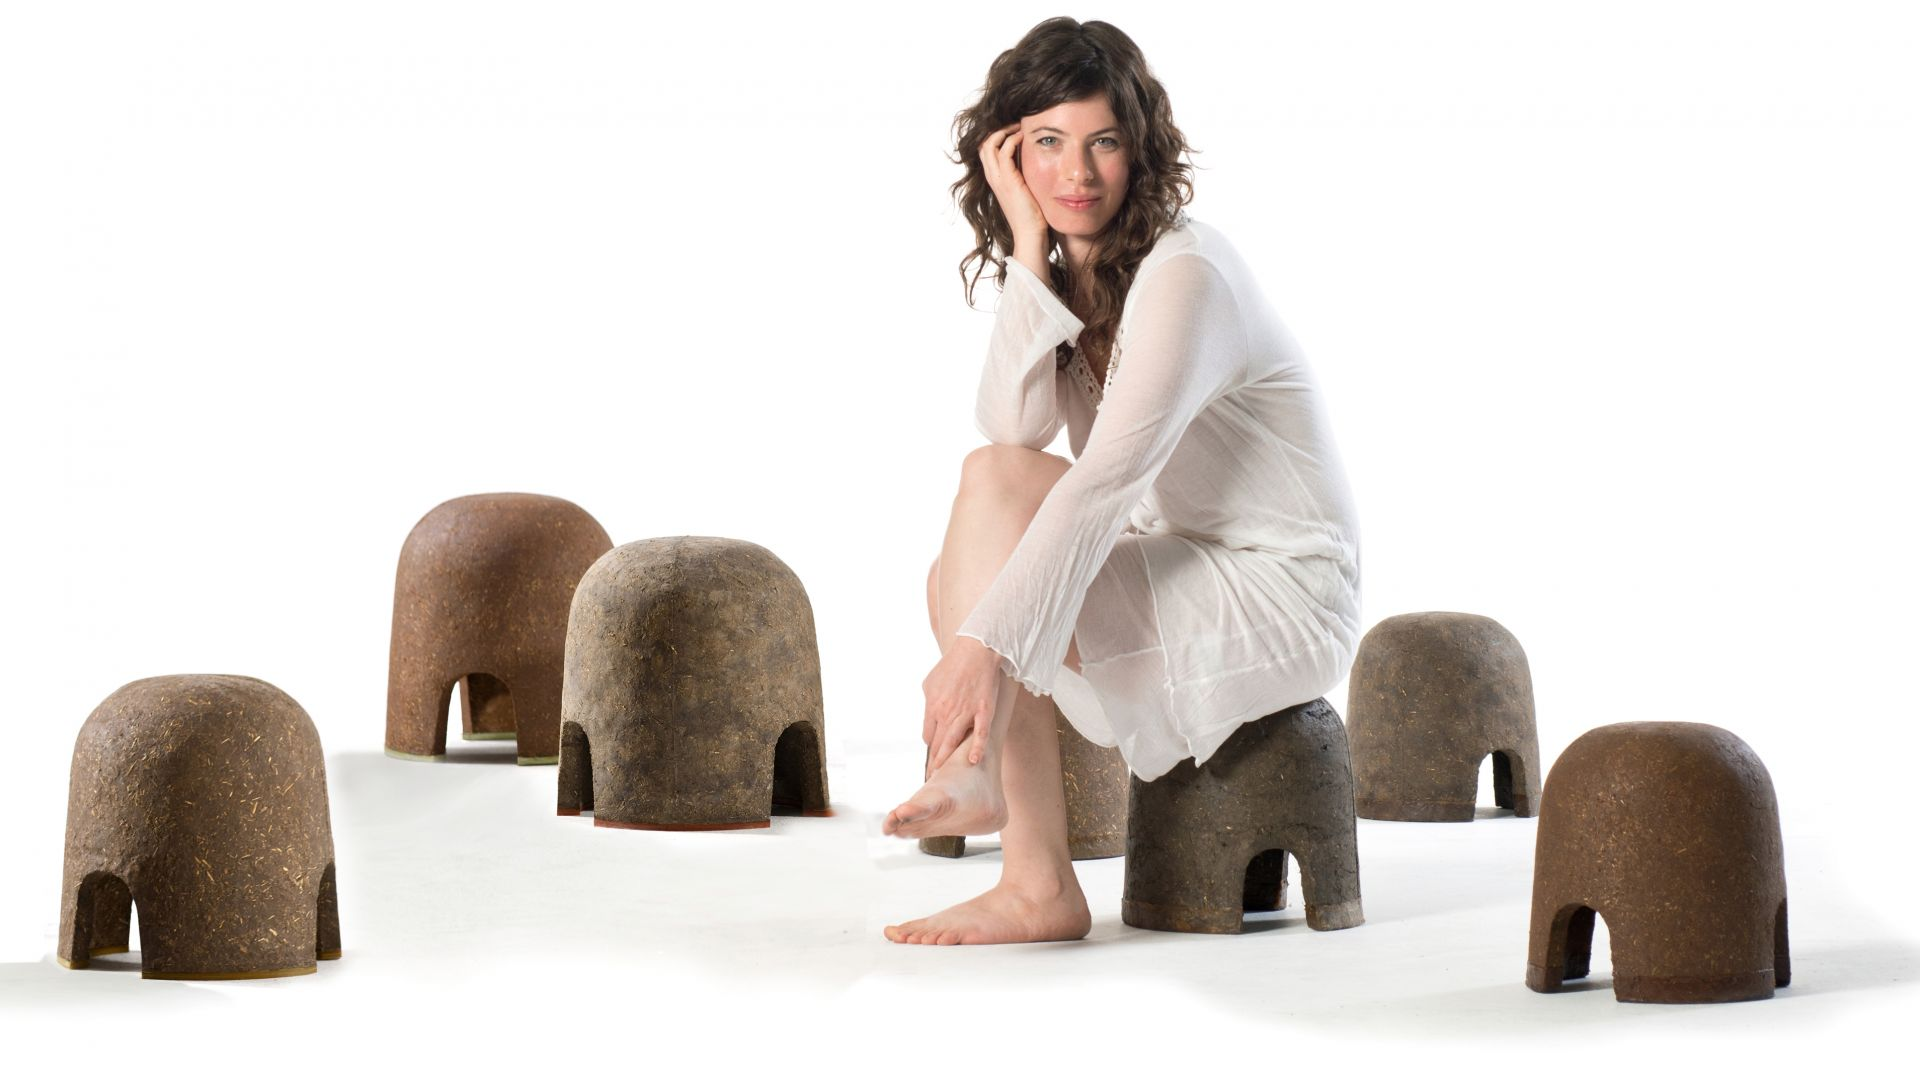 CRIATERRA Stools by Adital Ela  photo by Shay Ben Efrayim - Copy.jpg